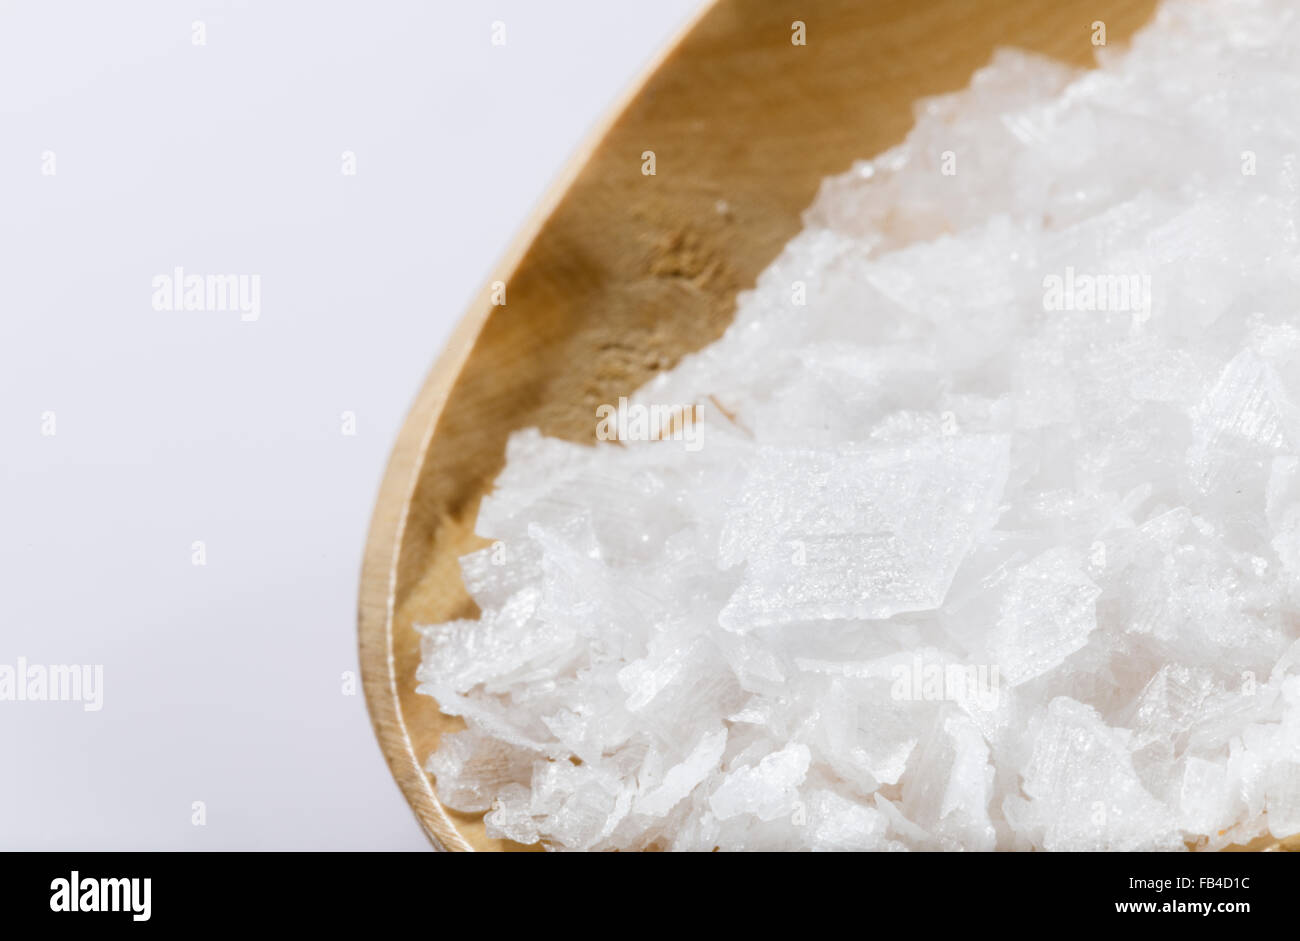 salt flakes with flaky texture of the sea salt crystals used to add in the top chef fine foods to enhance the flavor. - Stock Image